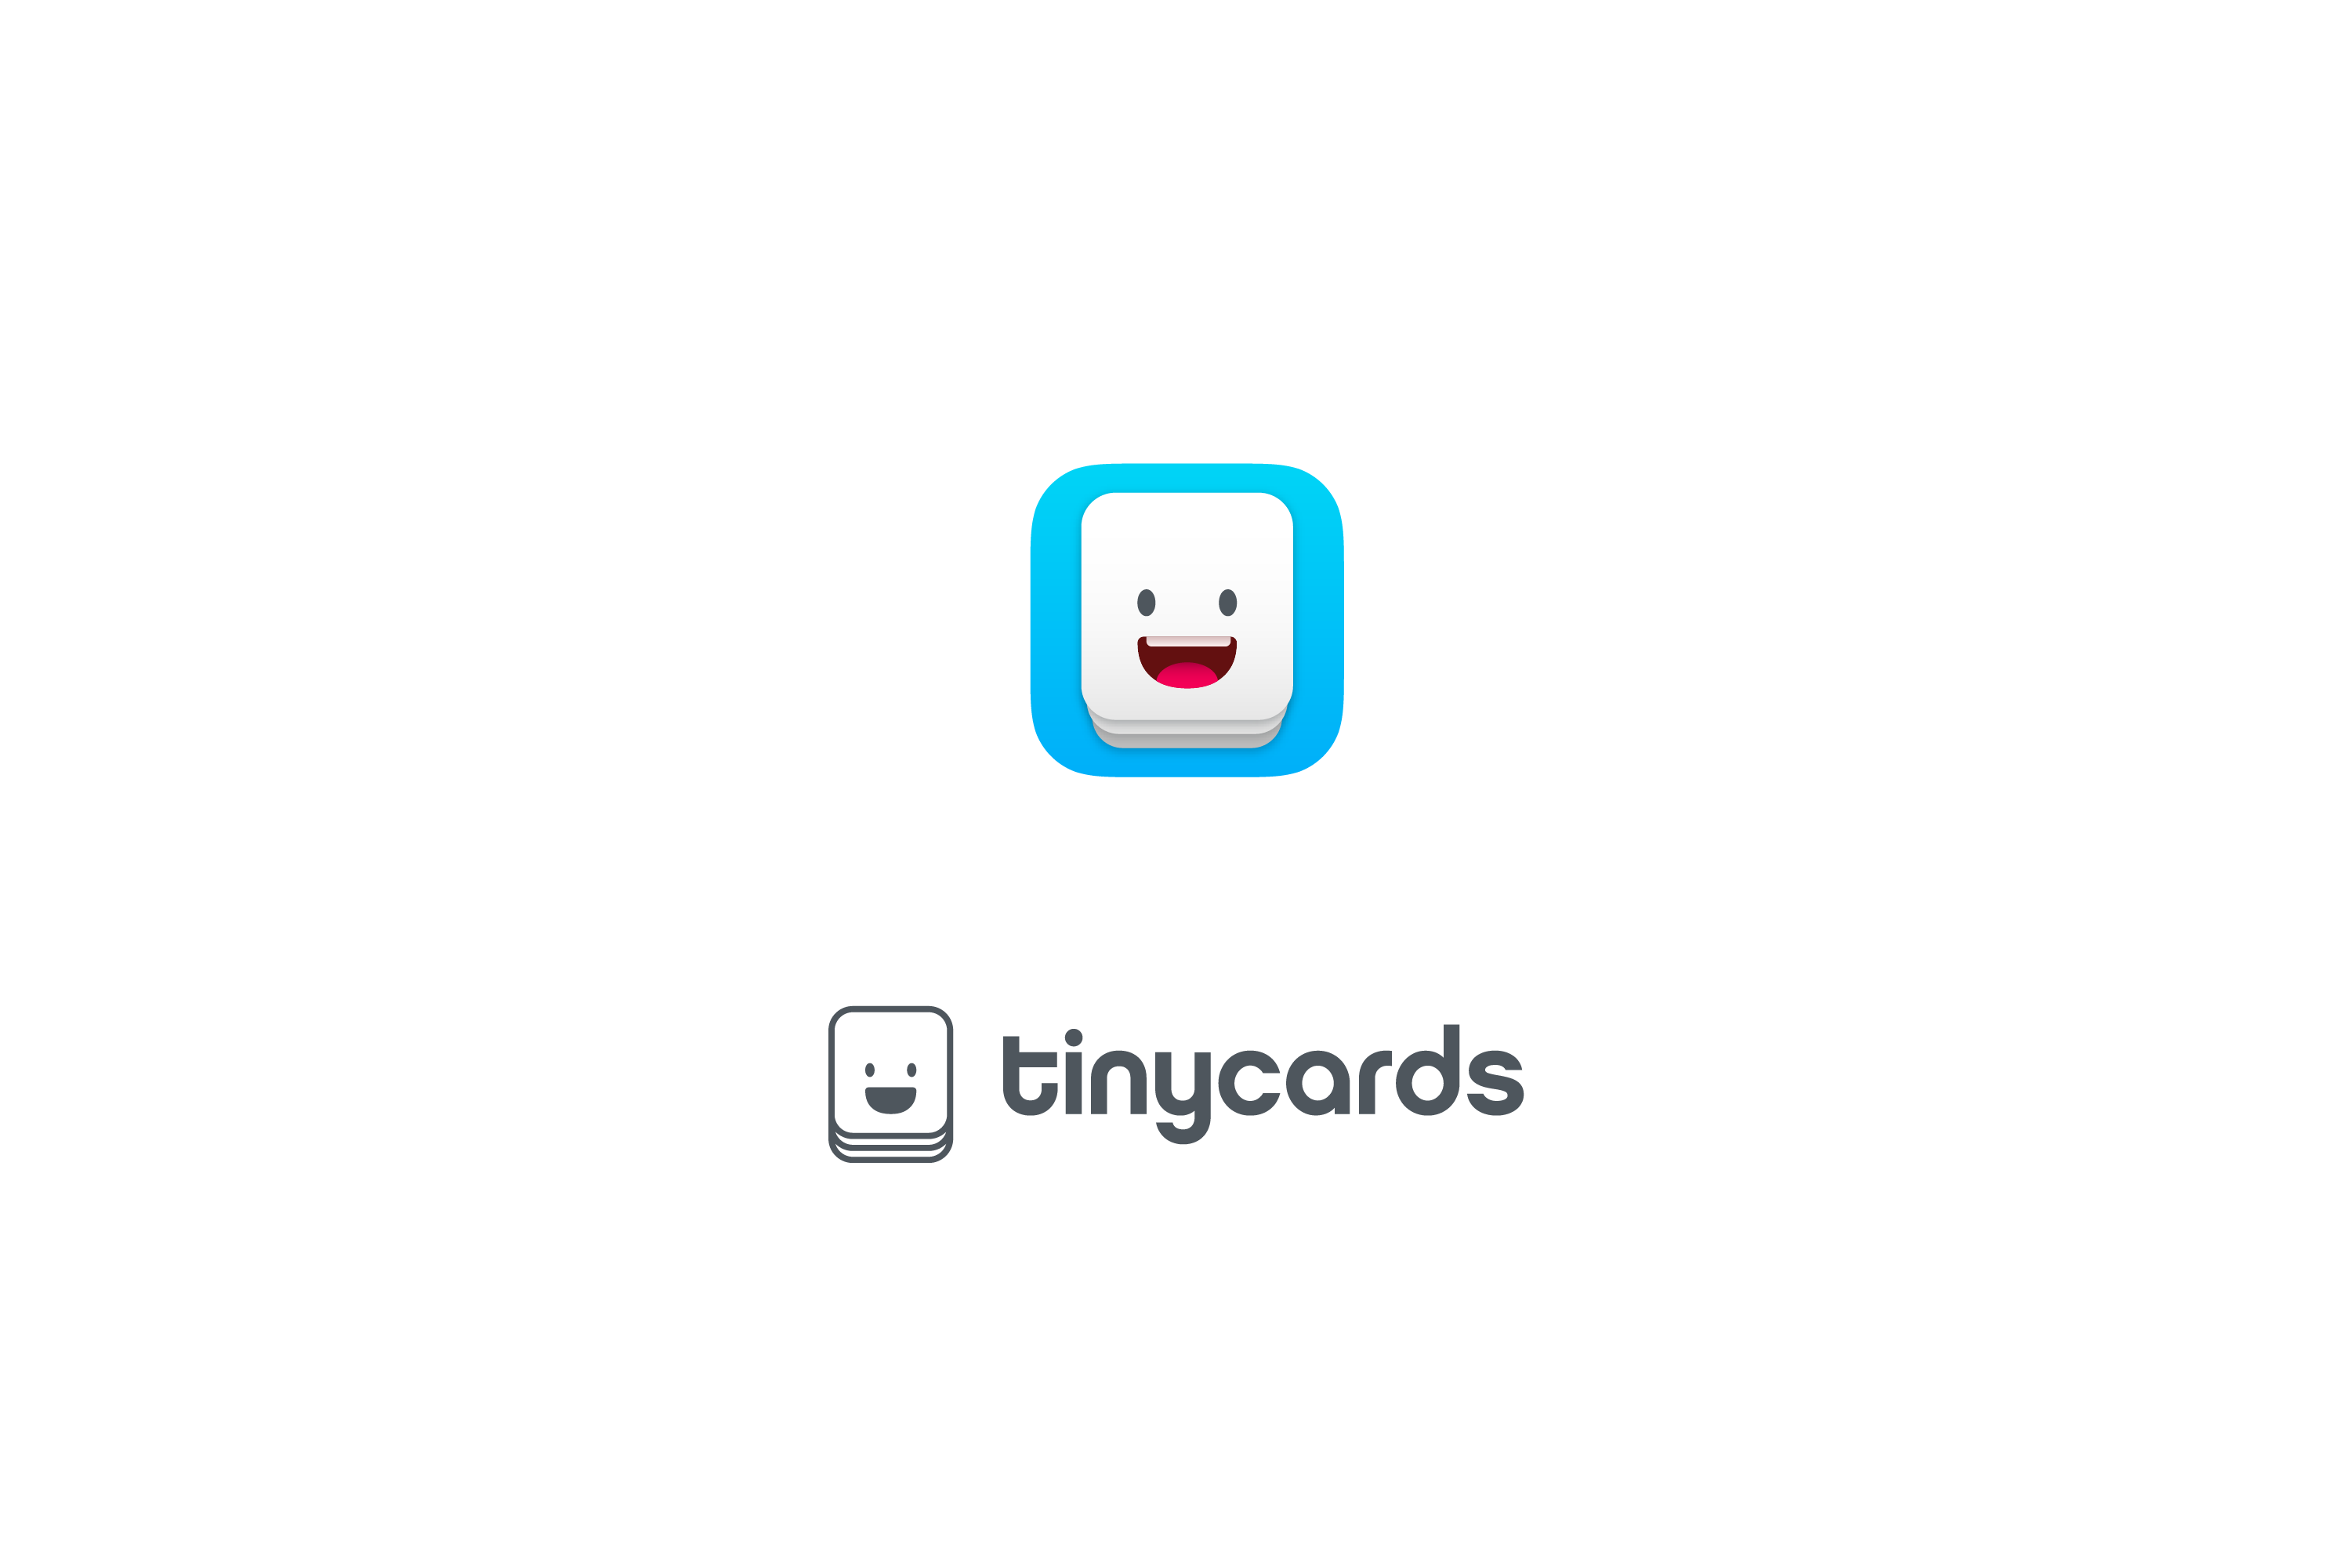 Duolingo Tinycards App Icon Logo by Jack Morgan